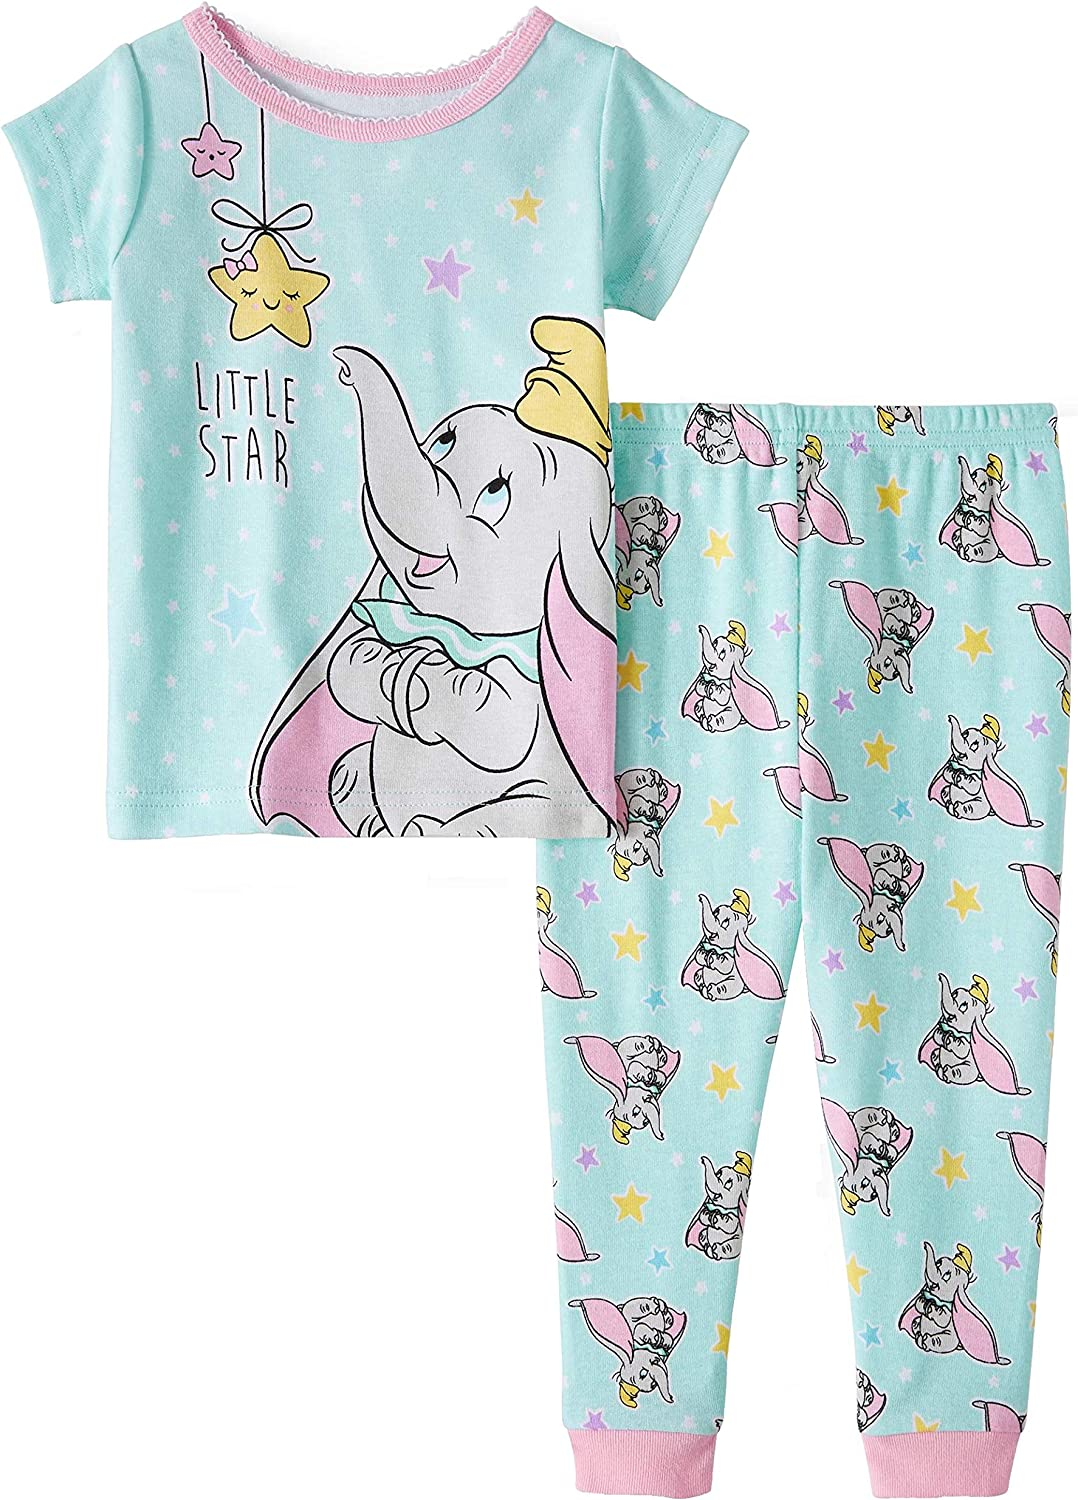 24 Months, Sweet Dreams Elephant Baby and Toddler Girls Snug Fit Graphic Pajama Long Sleeve Shirt and Pants Two-Piece Set